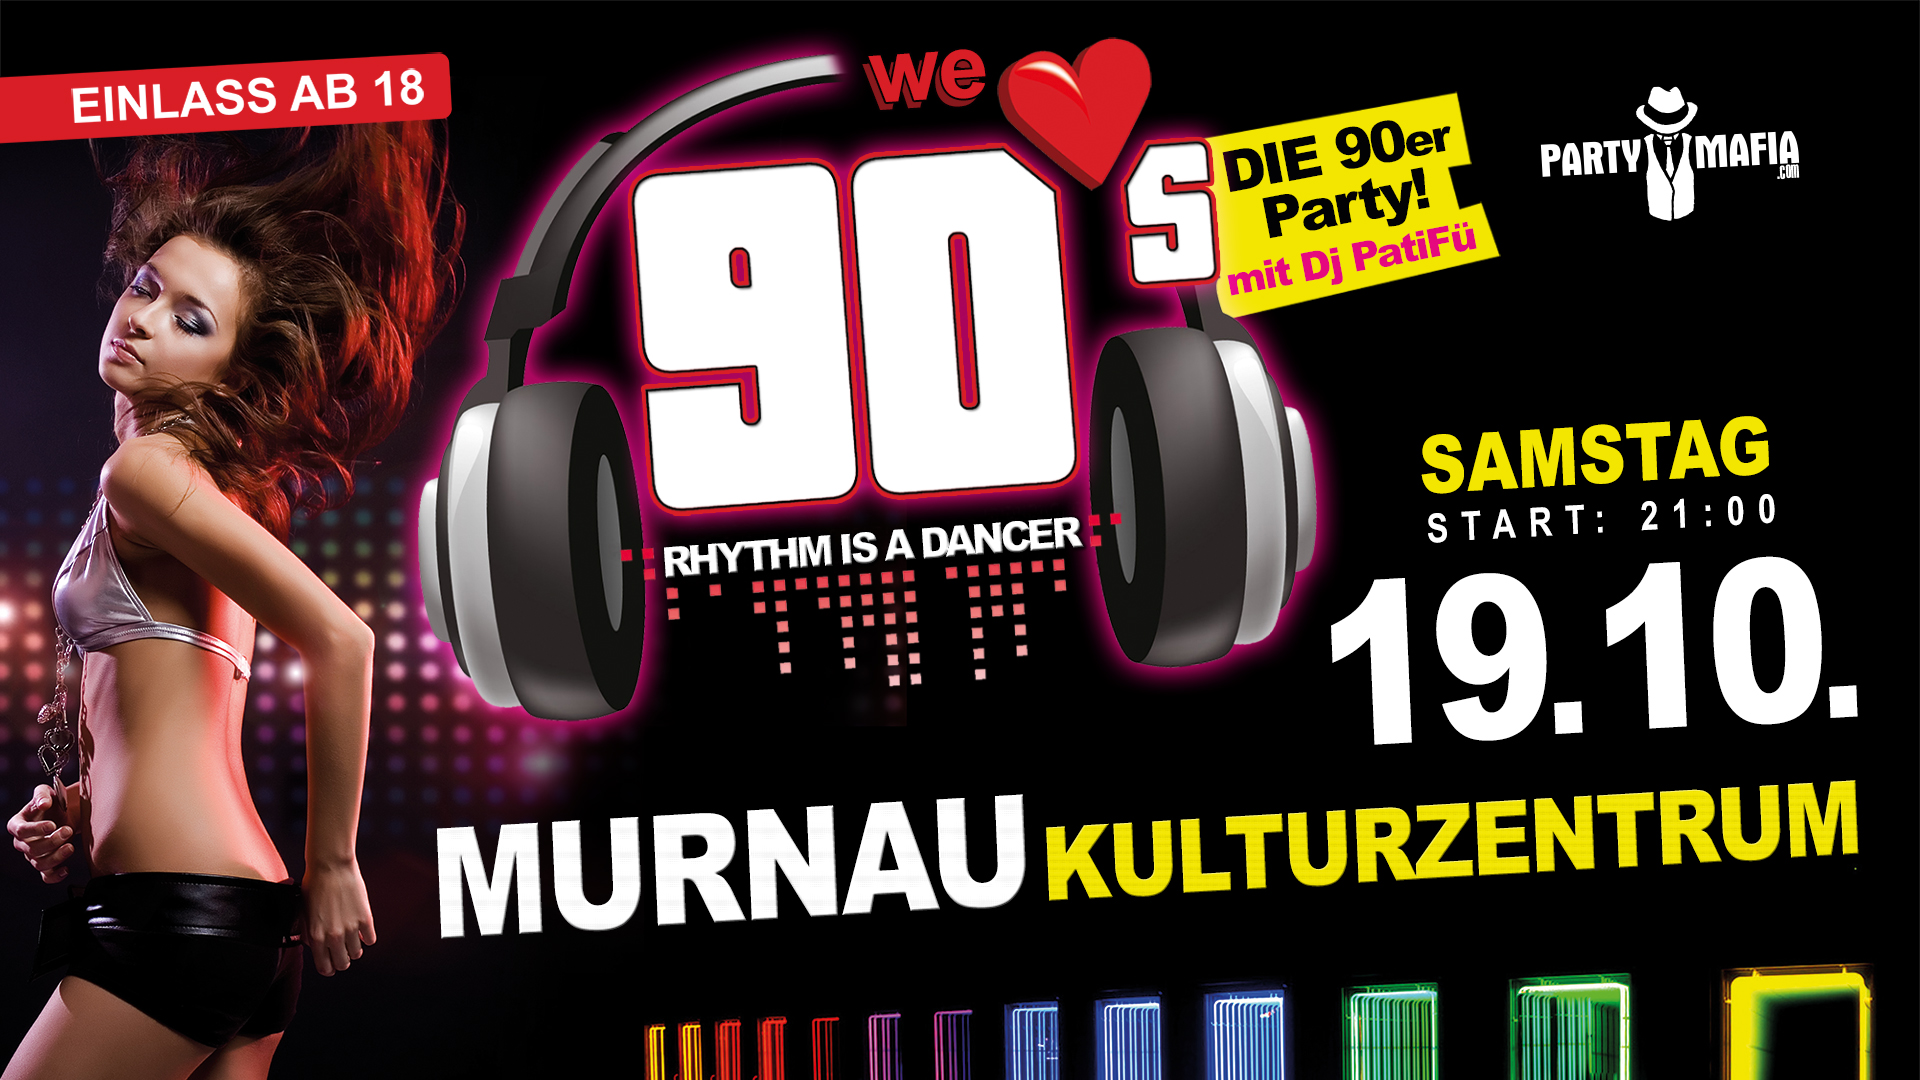 Party Highlight, Kultparty in Murnau: Die legendäre 90er Party